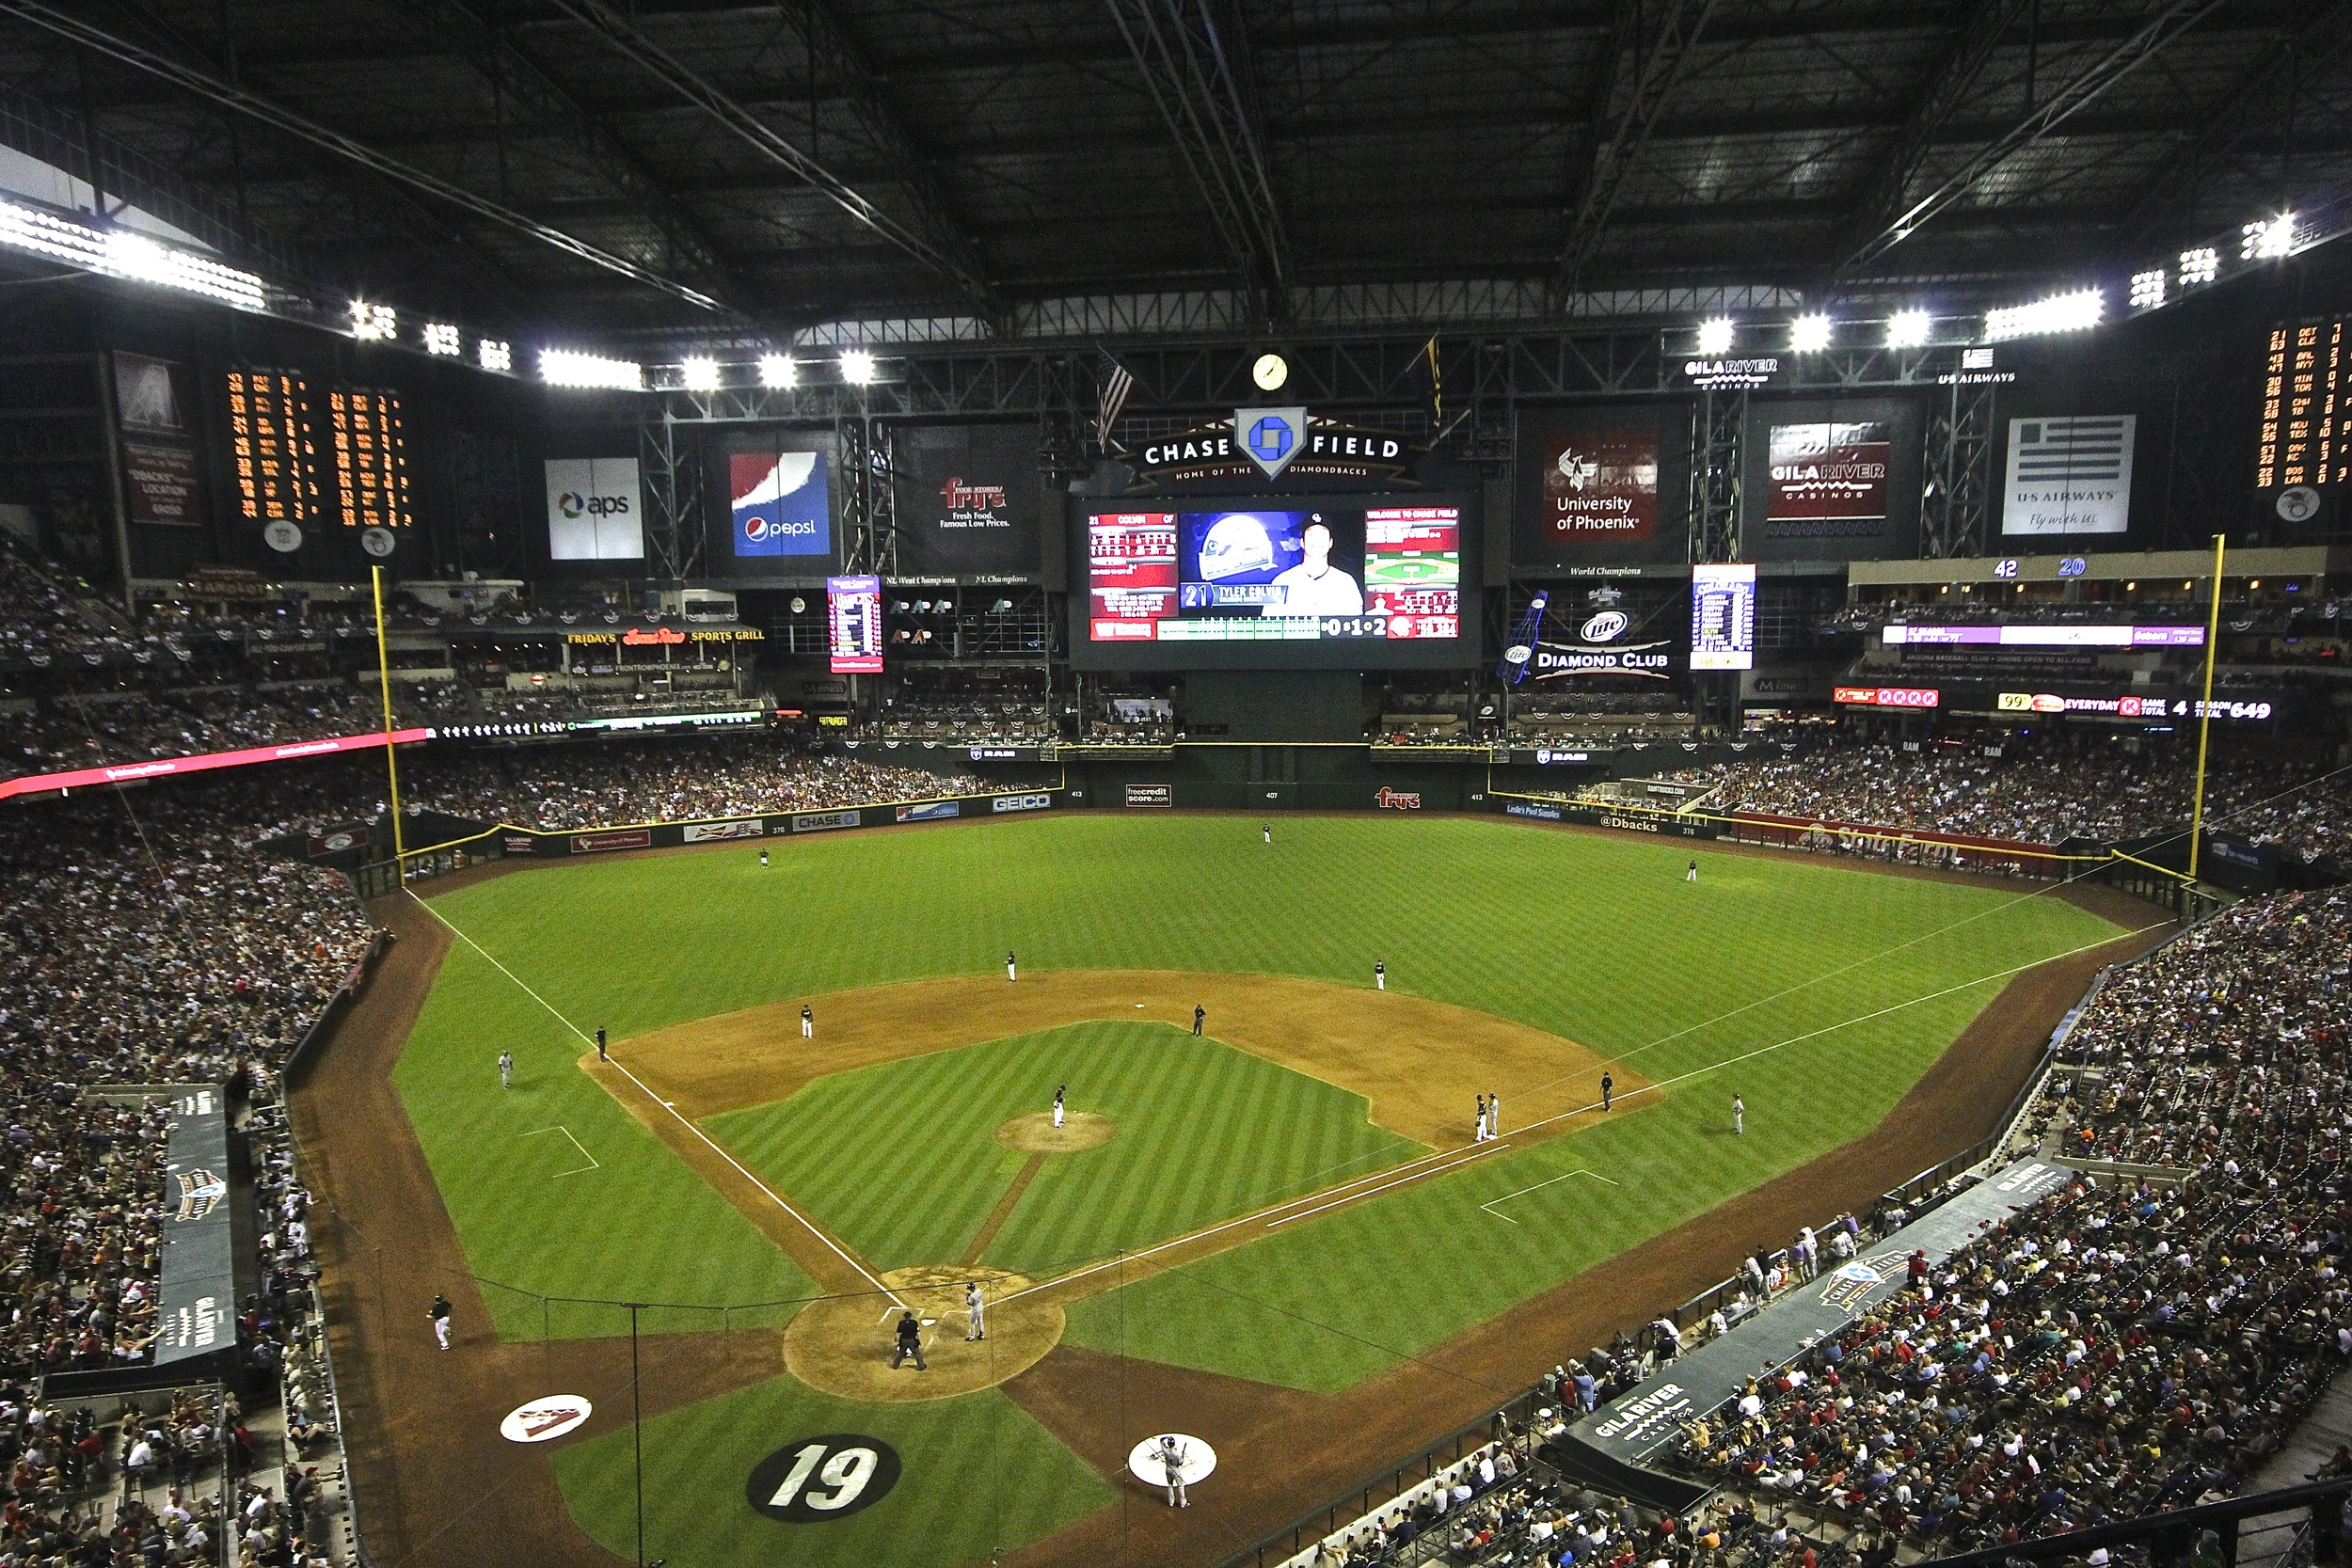 Chase Field